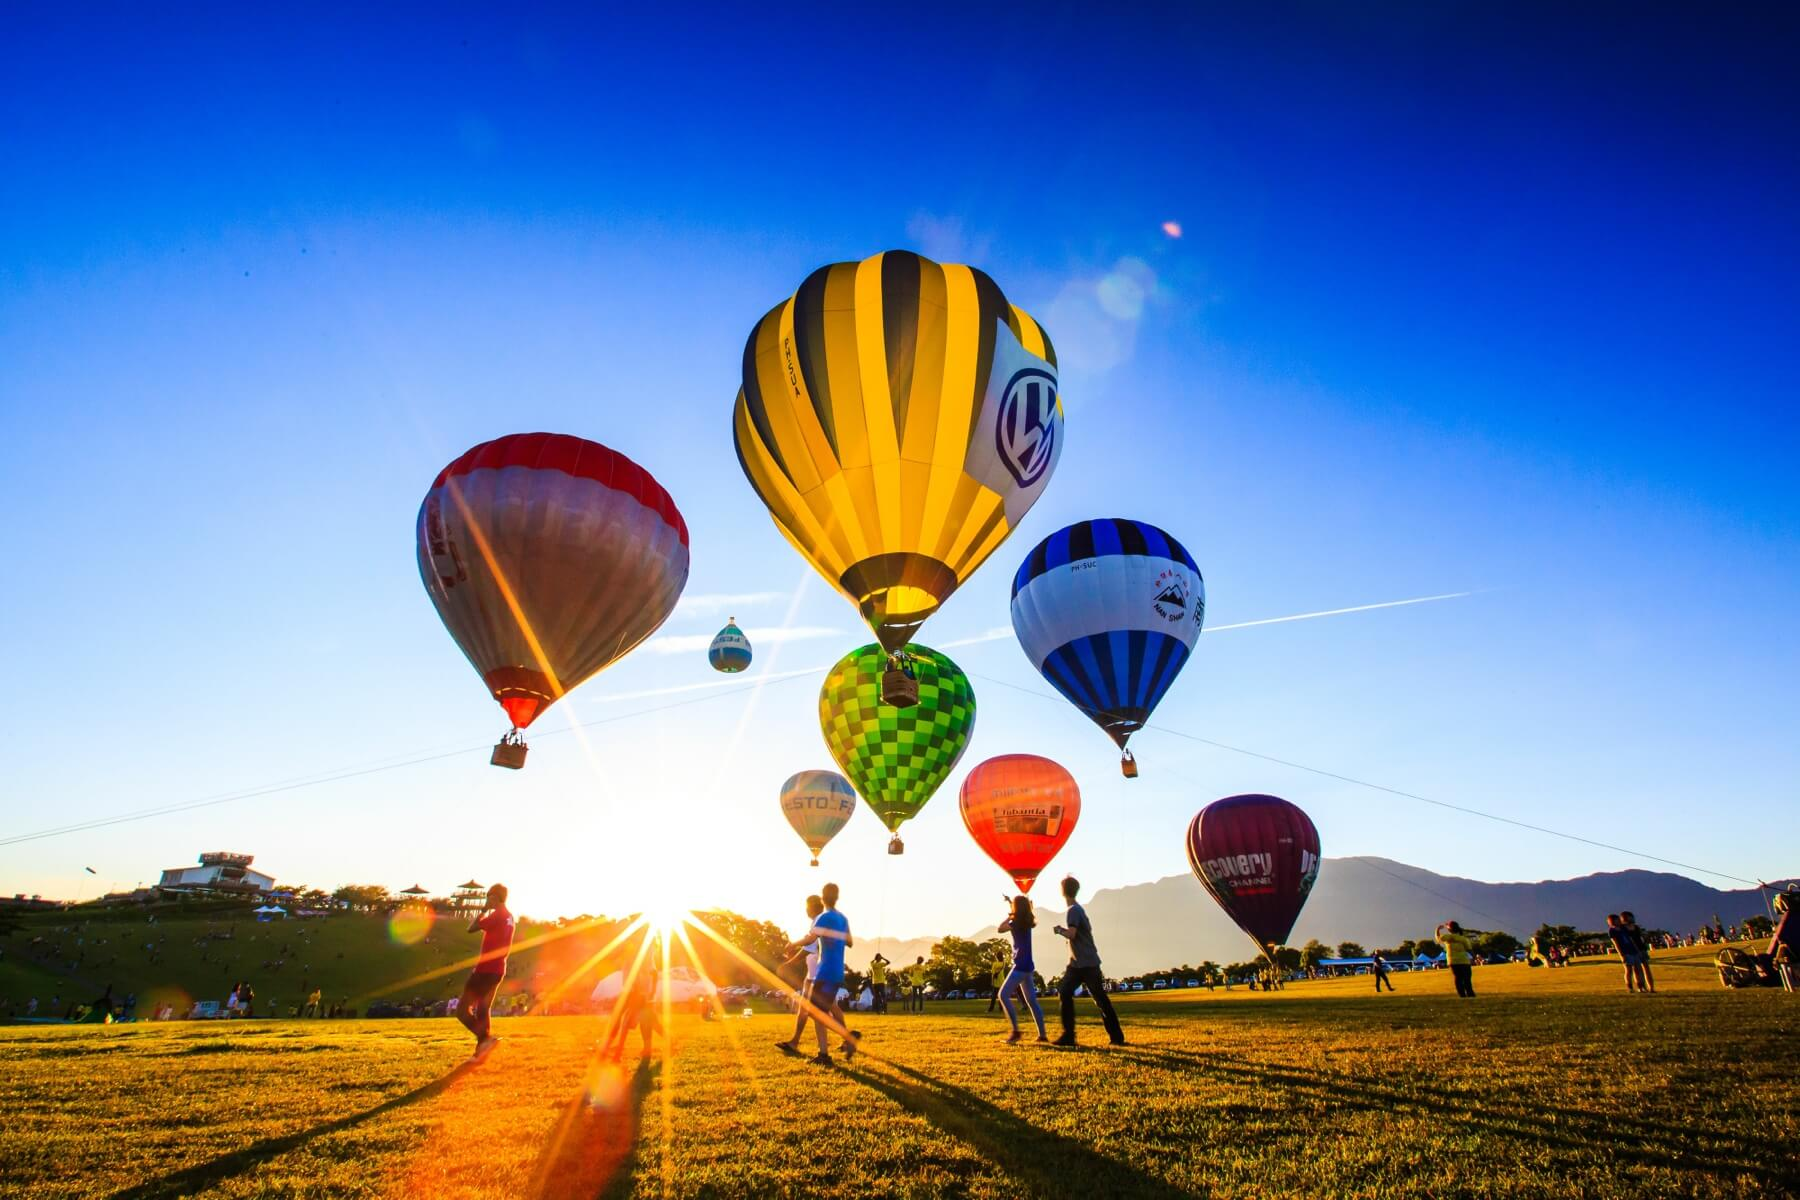 Balloon Ascension Day 2018 - January 9